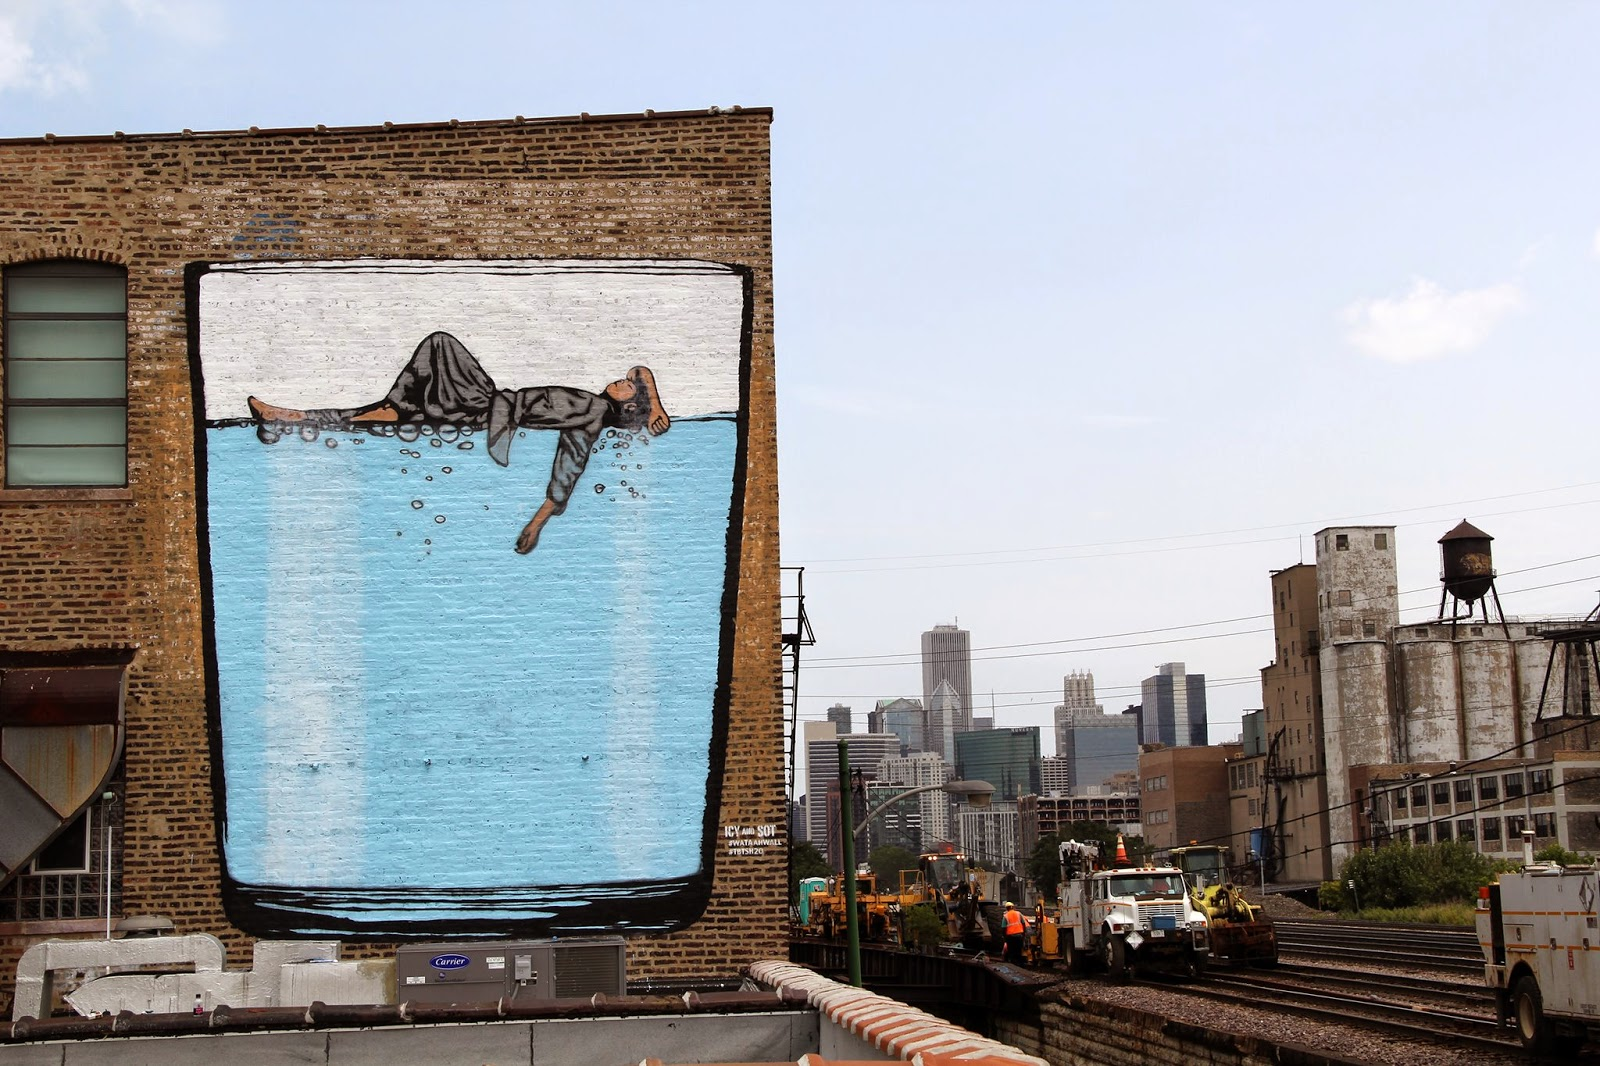 Icy & Sot New Mural – Chicago, USA